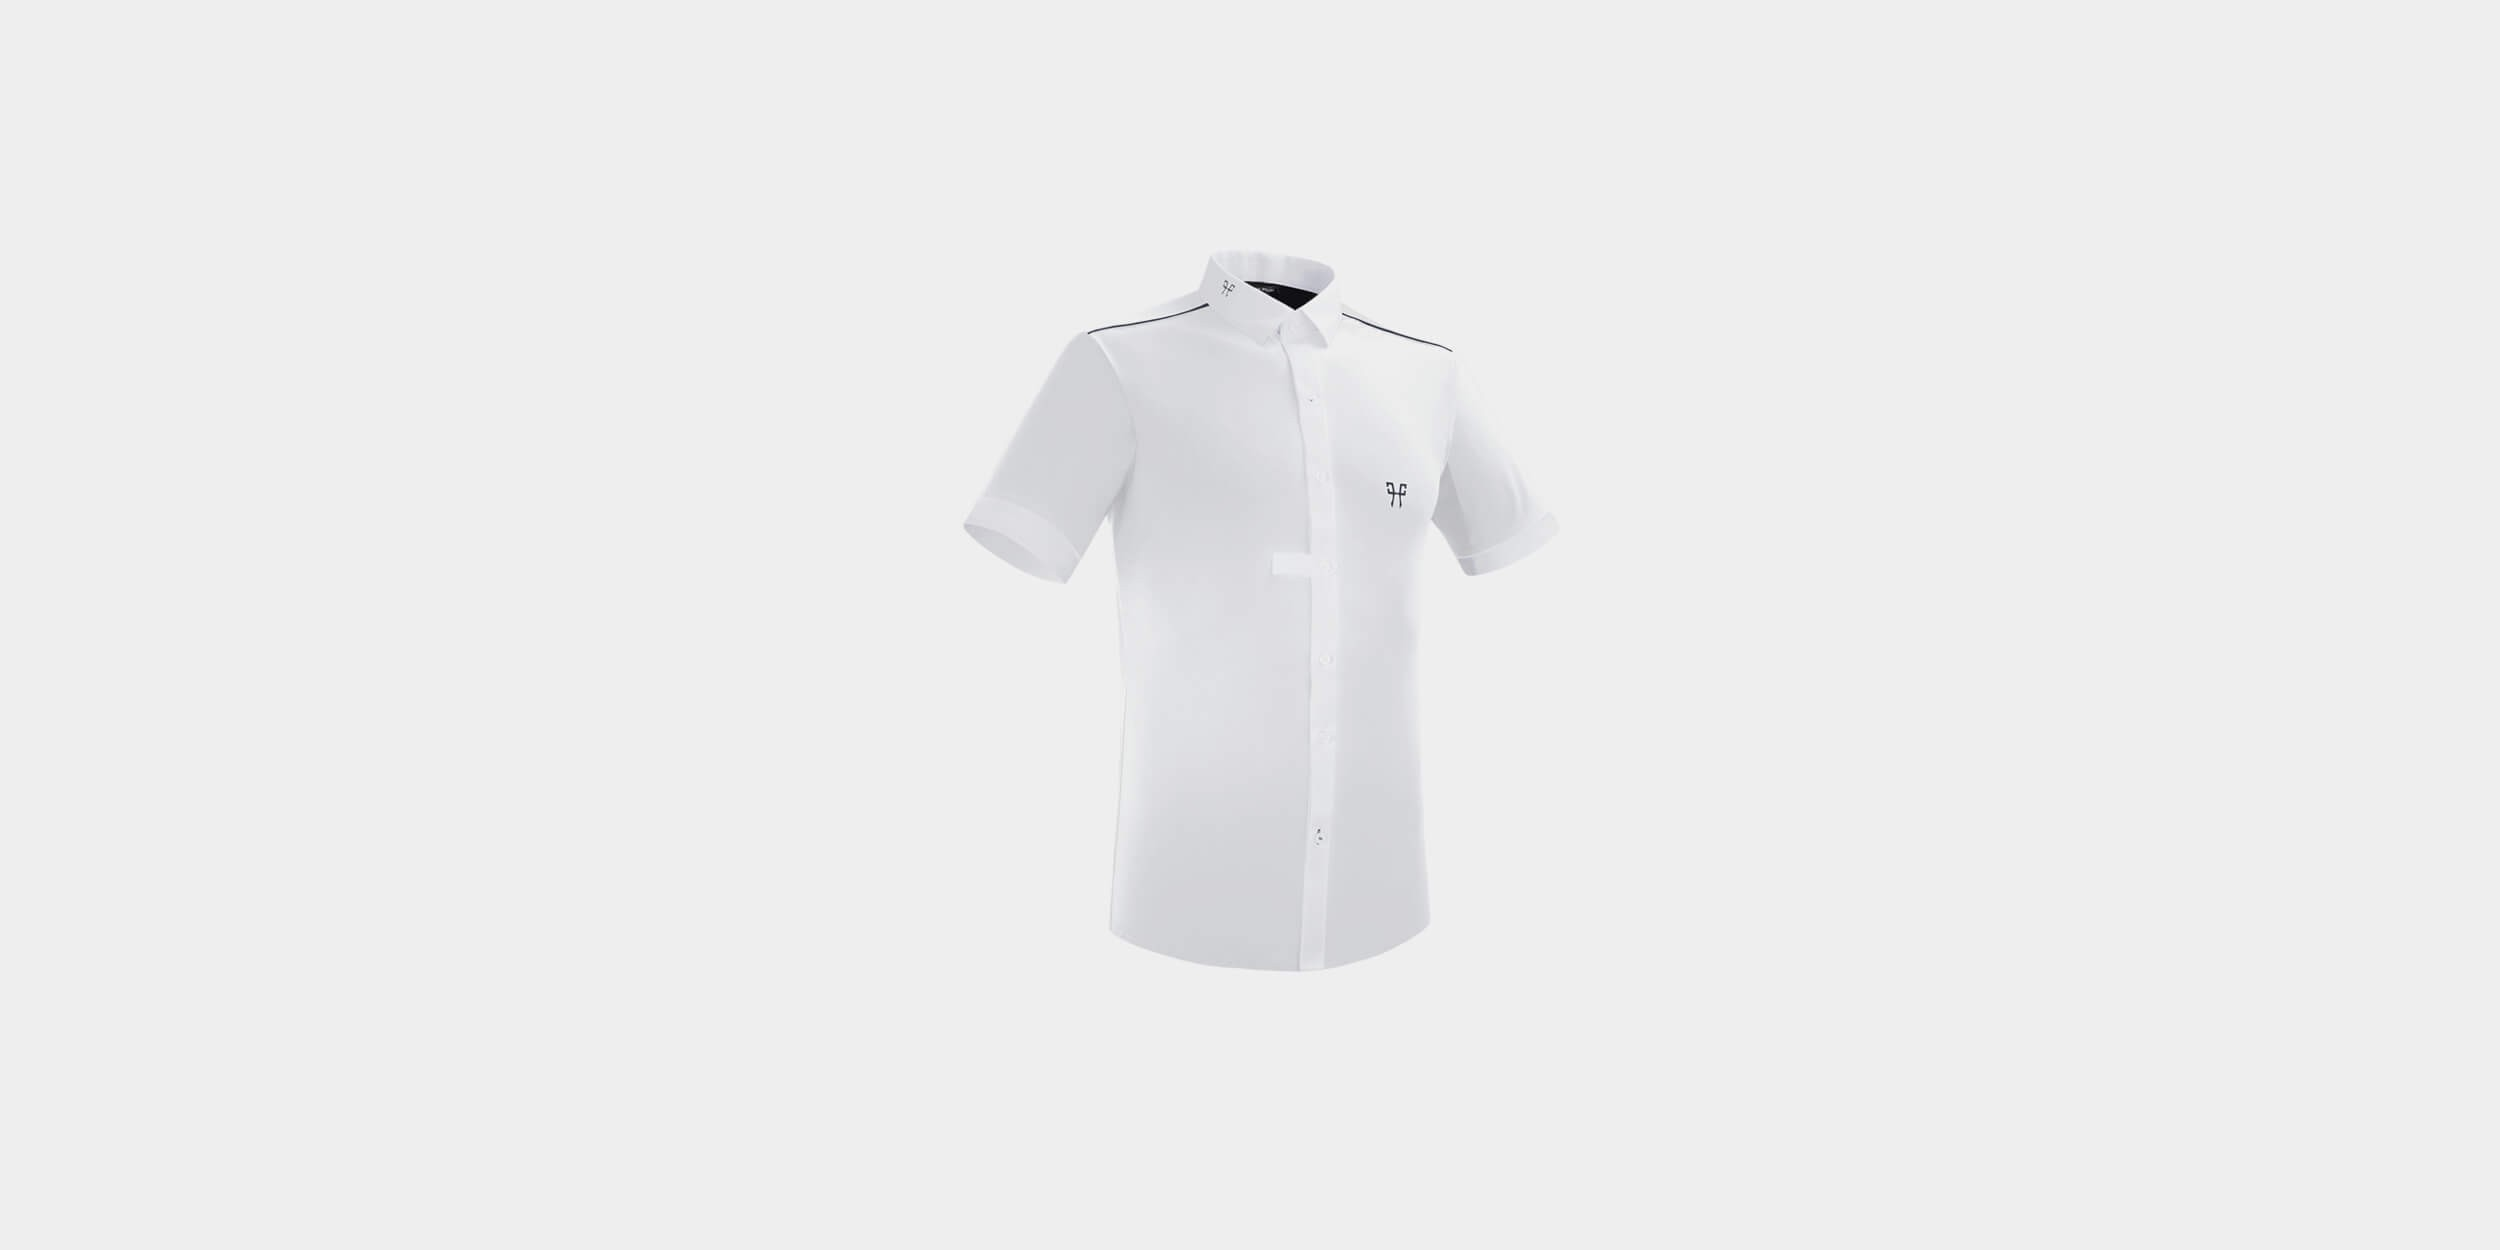 Sleeveless riding show shirt for men